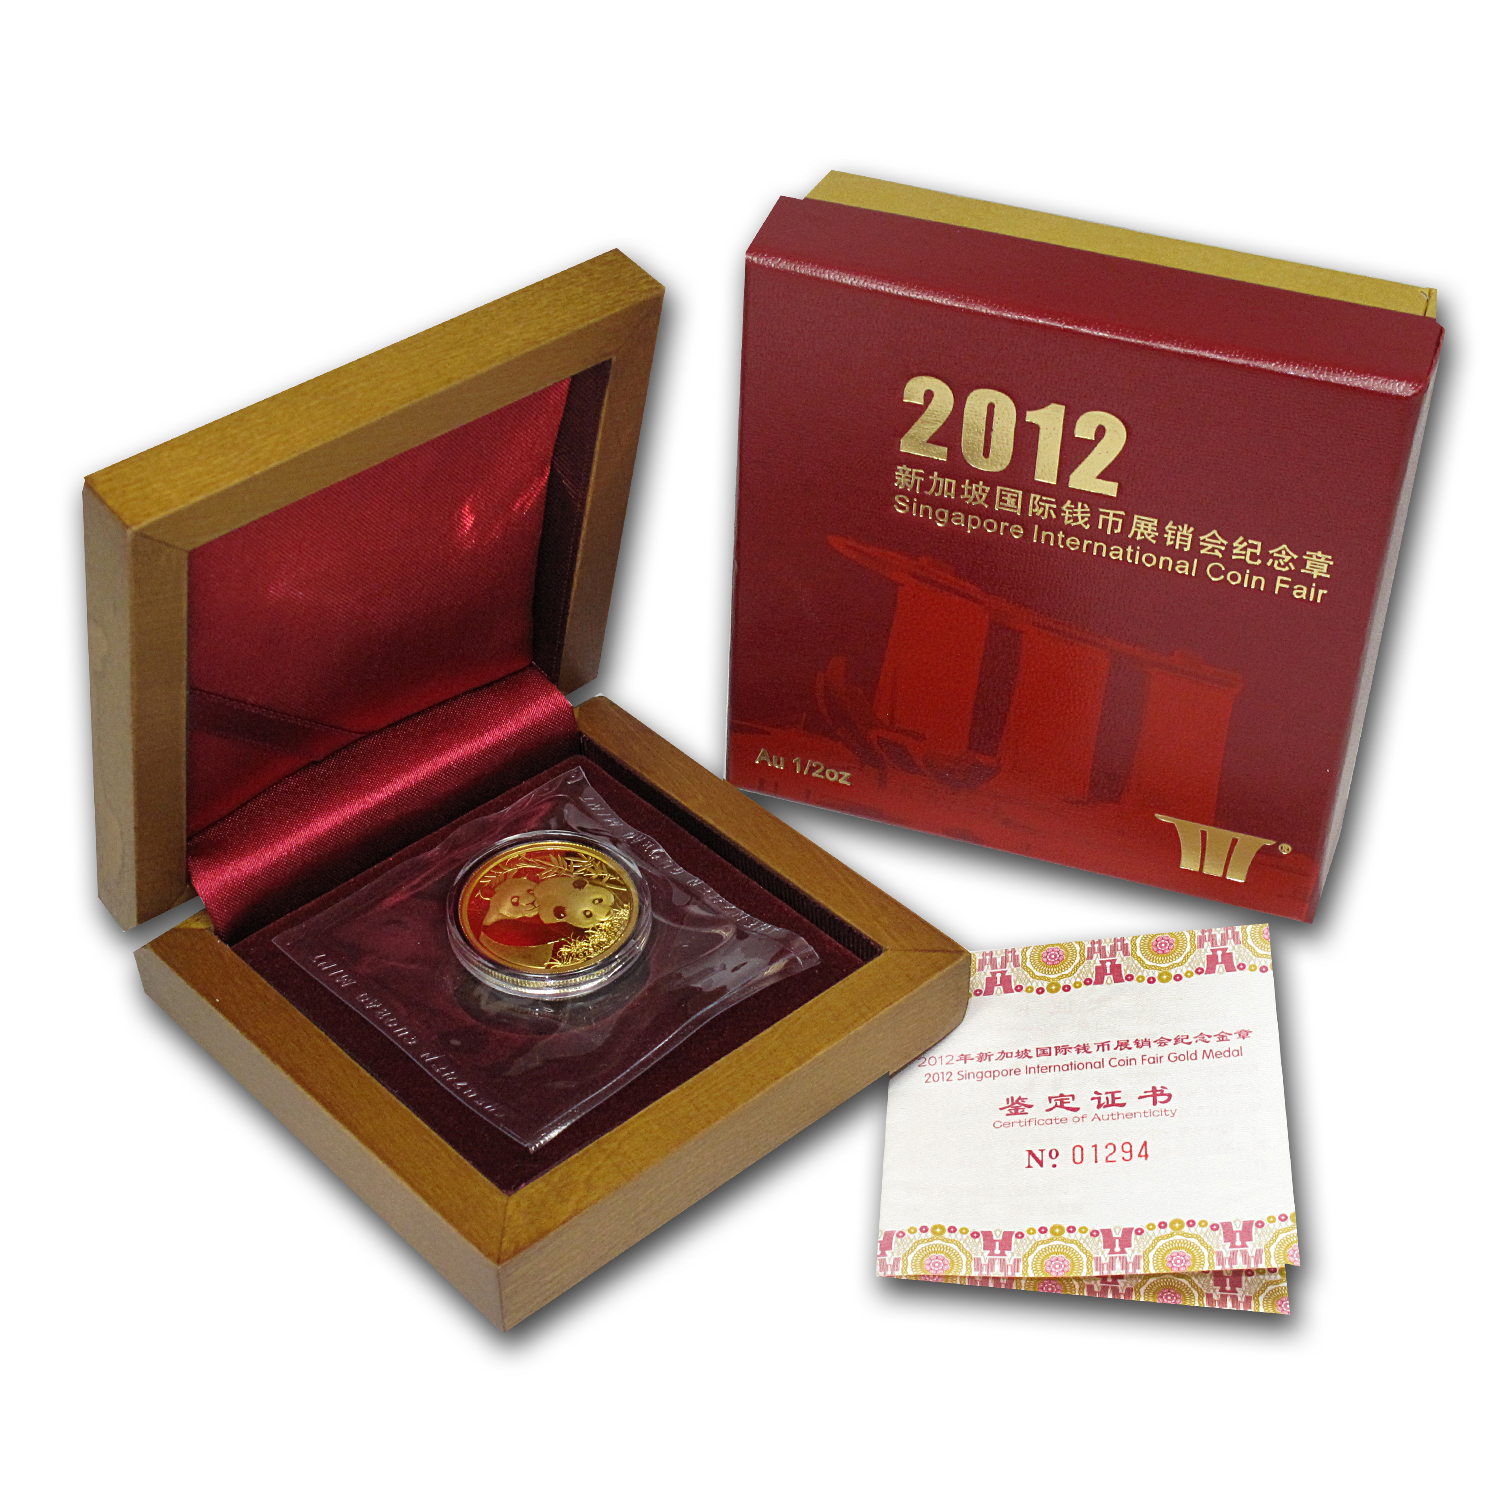 2012 China 1/2 oz Gold Panda Pf Singapore Coin Fair (Box & COA)